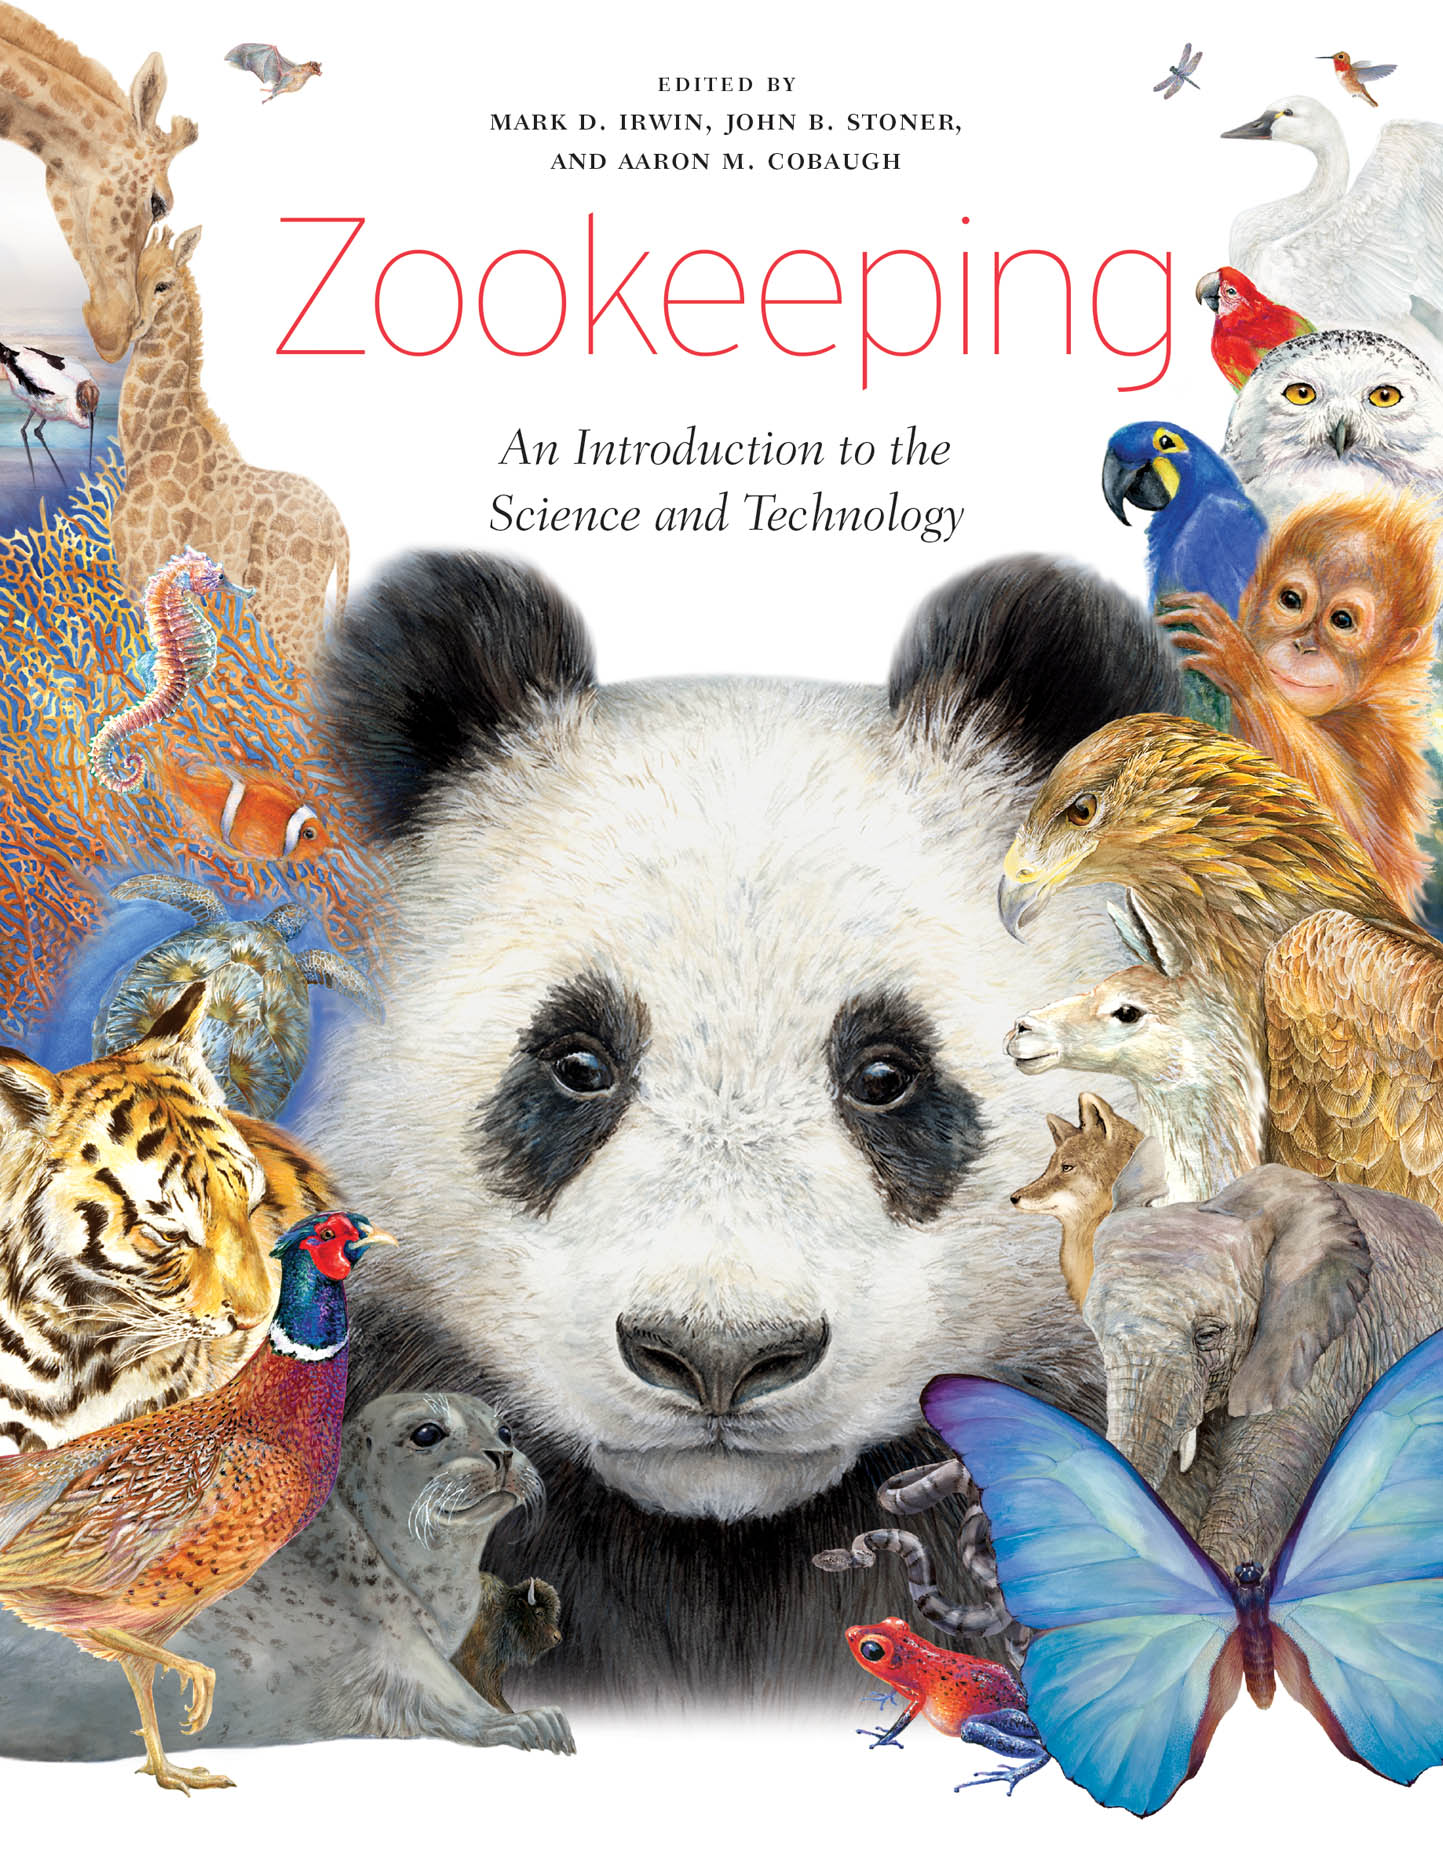 Zookeeping